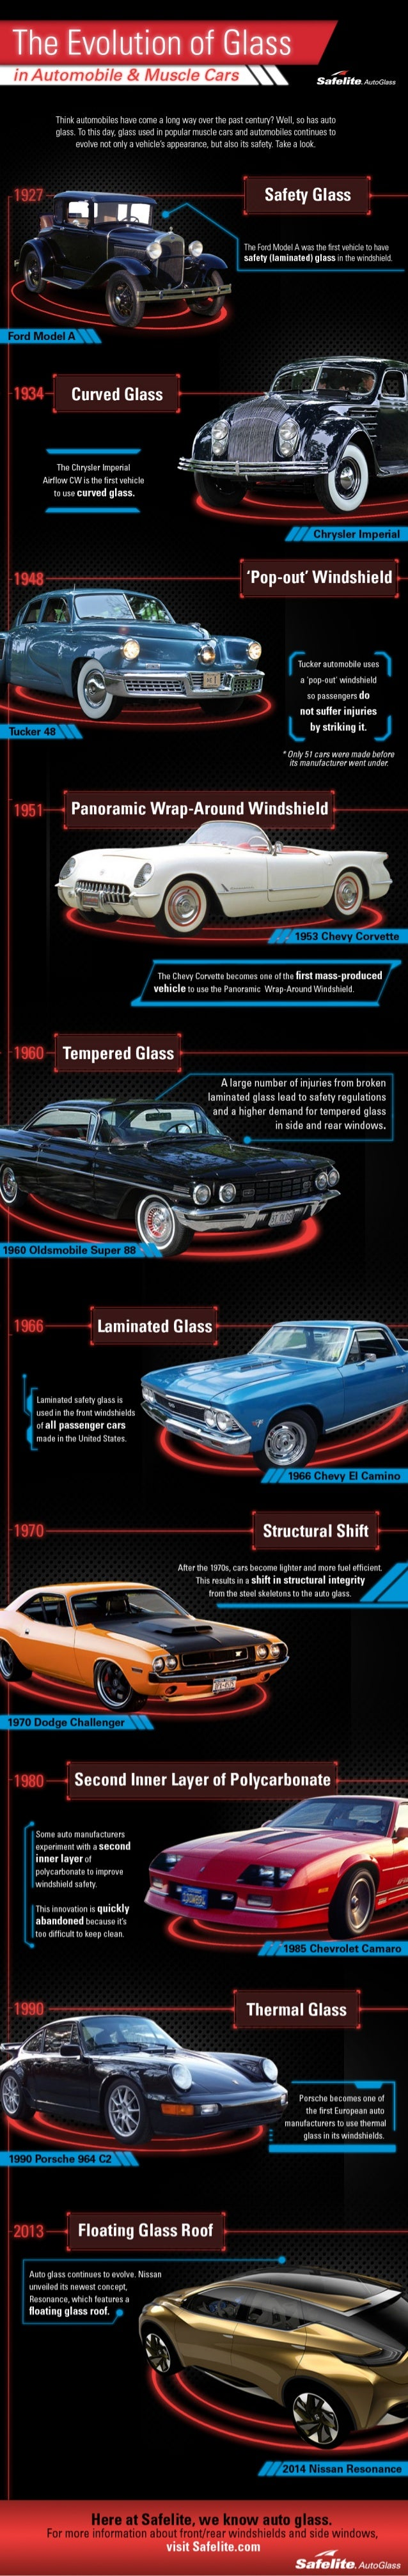 E 58,0'! -'O.  AutoGIass  Think automobiles have come a long way over the past century?  Well,  so has auto glass.  To thi...